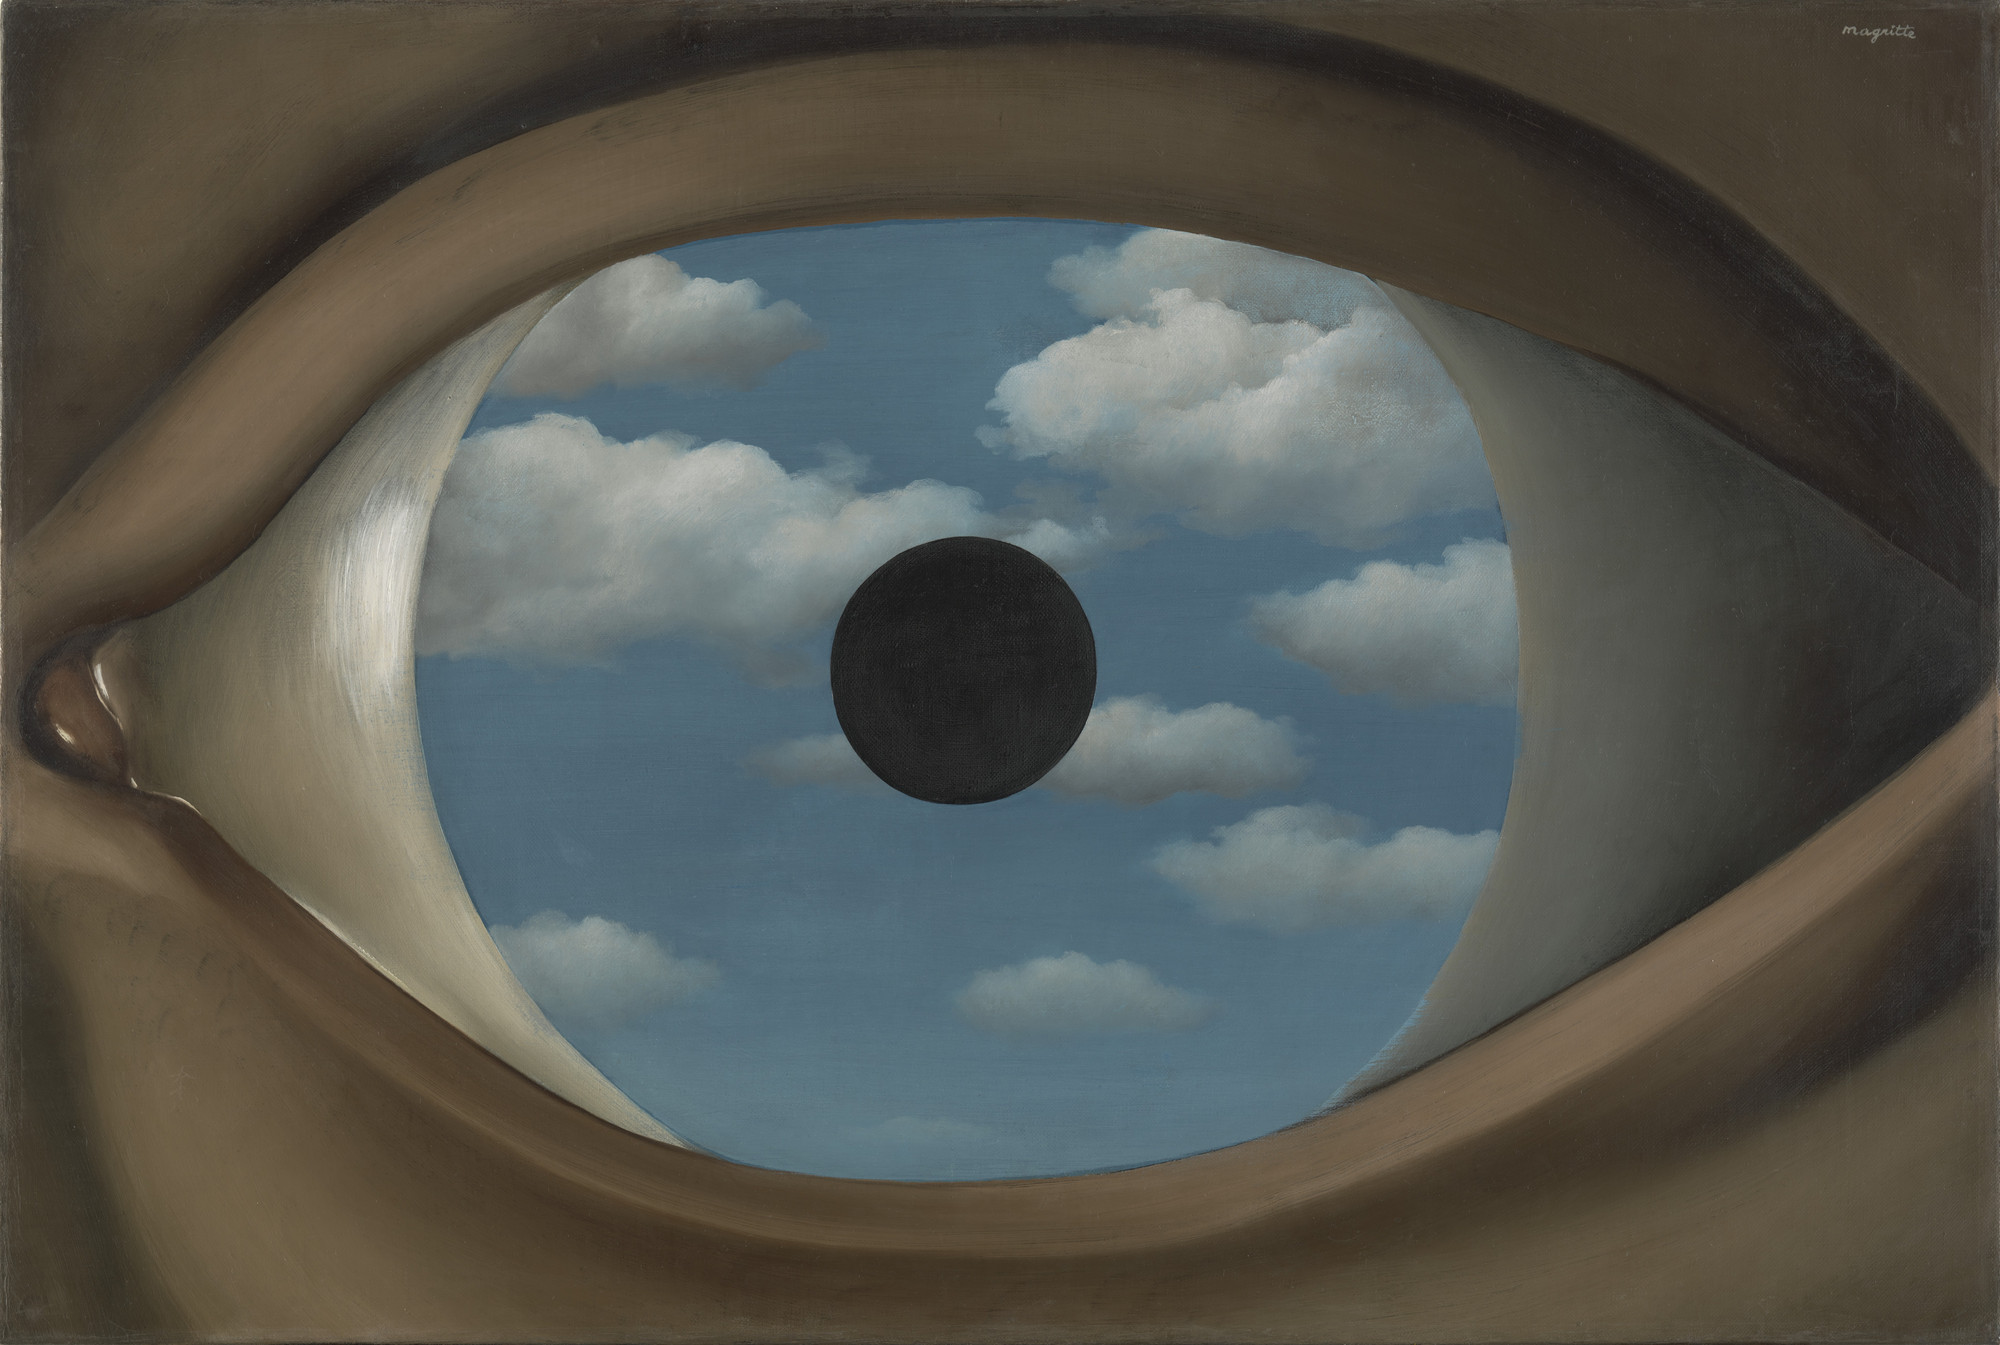 René Magritte. The False Mirror. Paris 1929